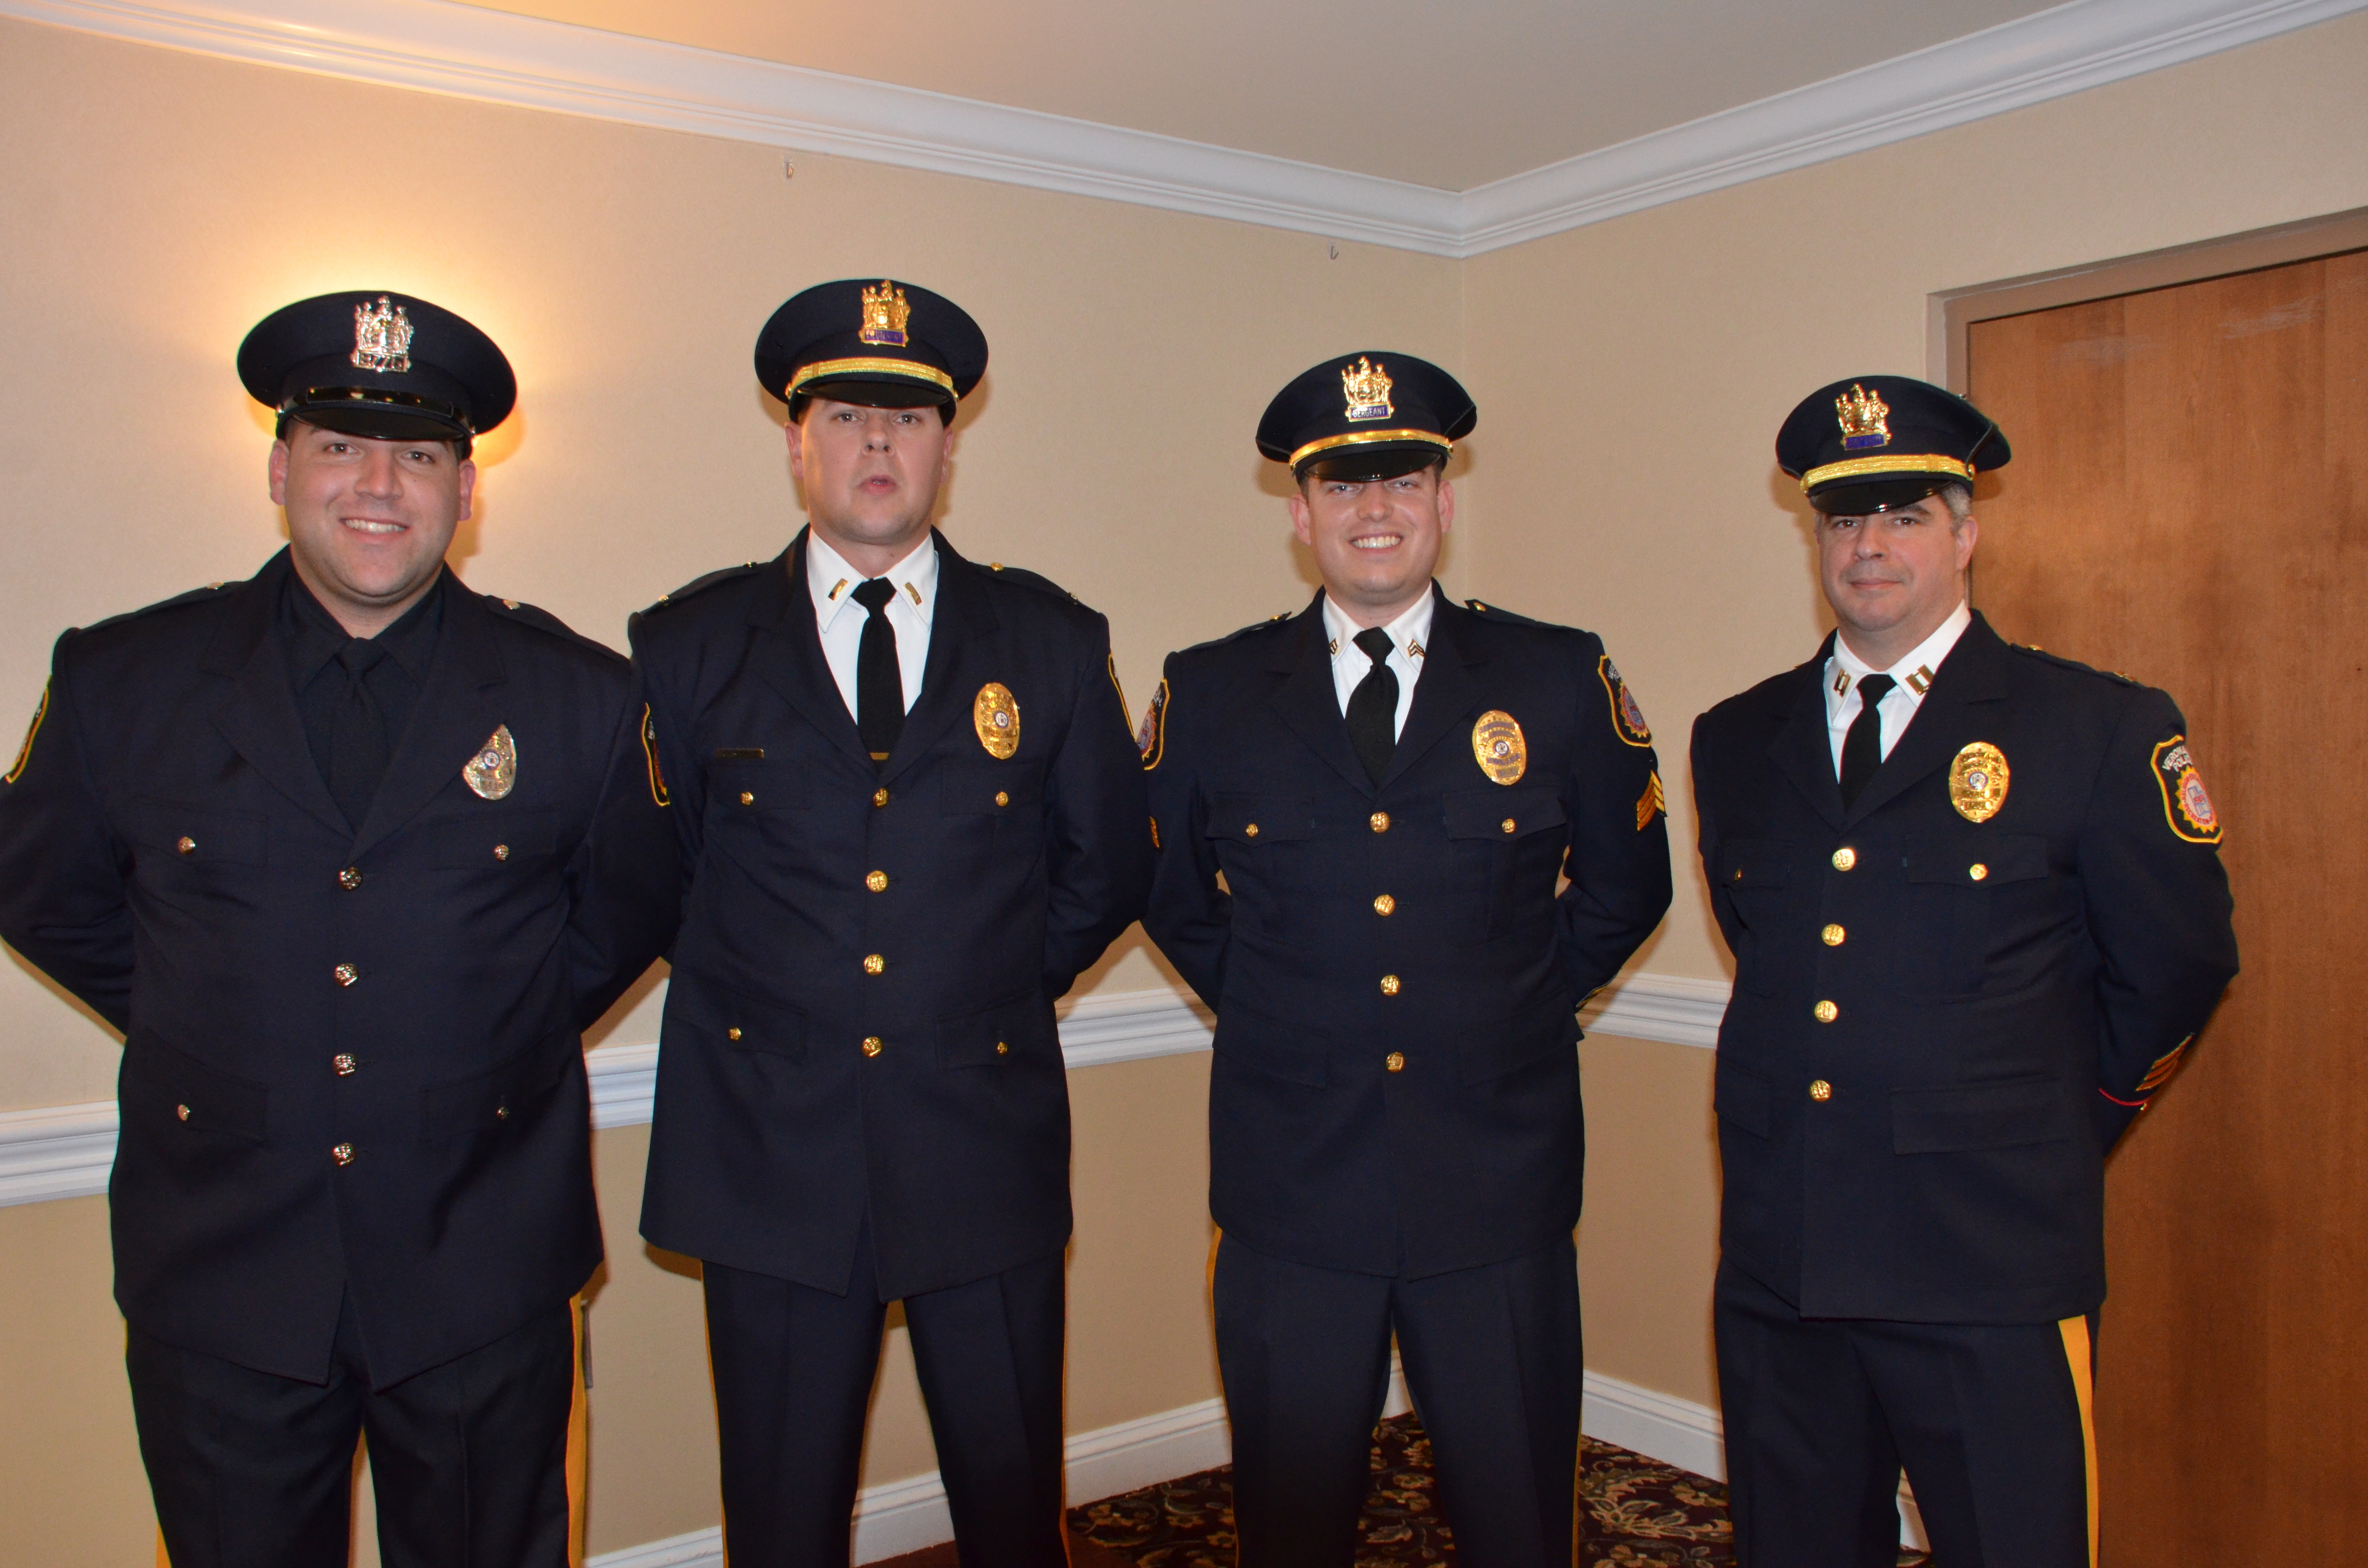 verona police department announces promotions and new officer